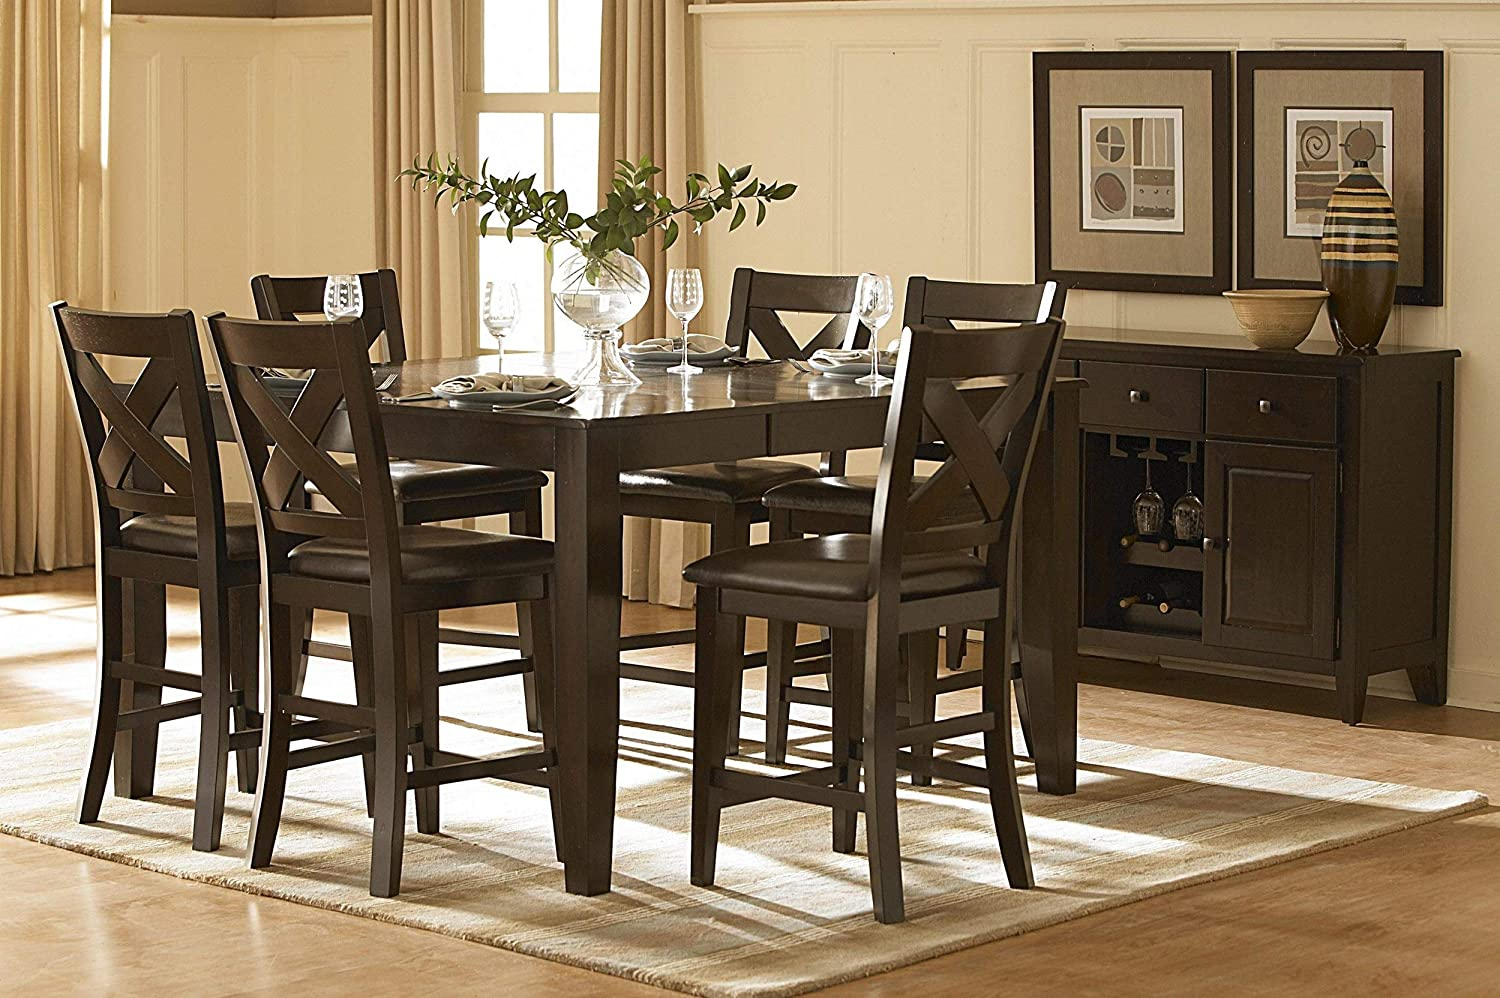 HEFX Counter square dining table for 6